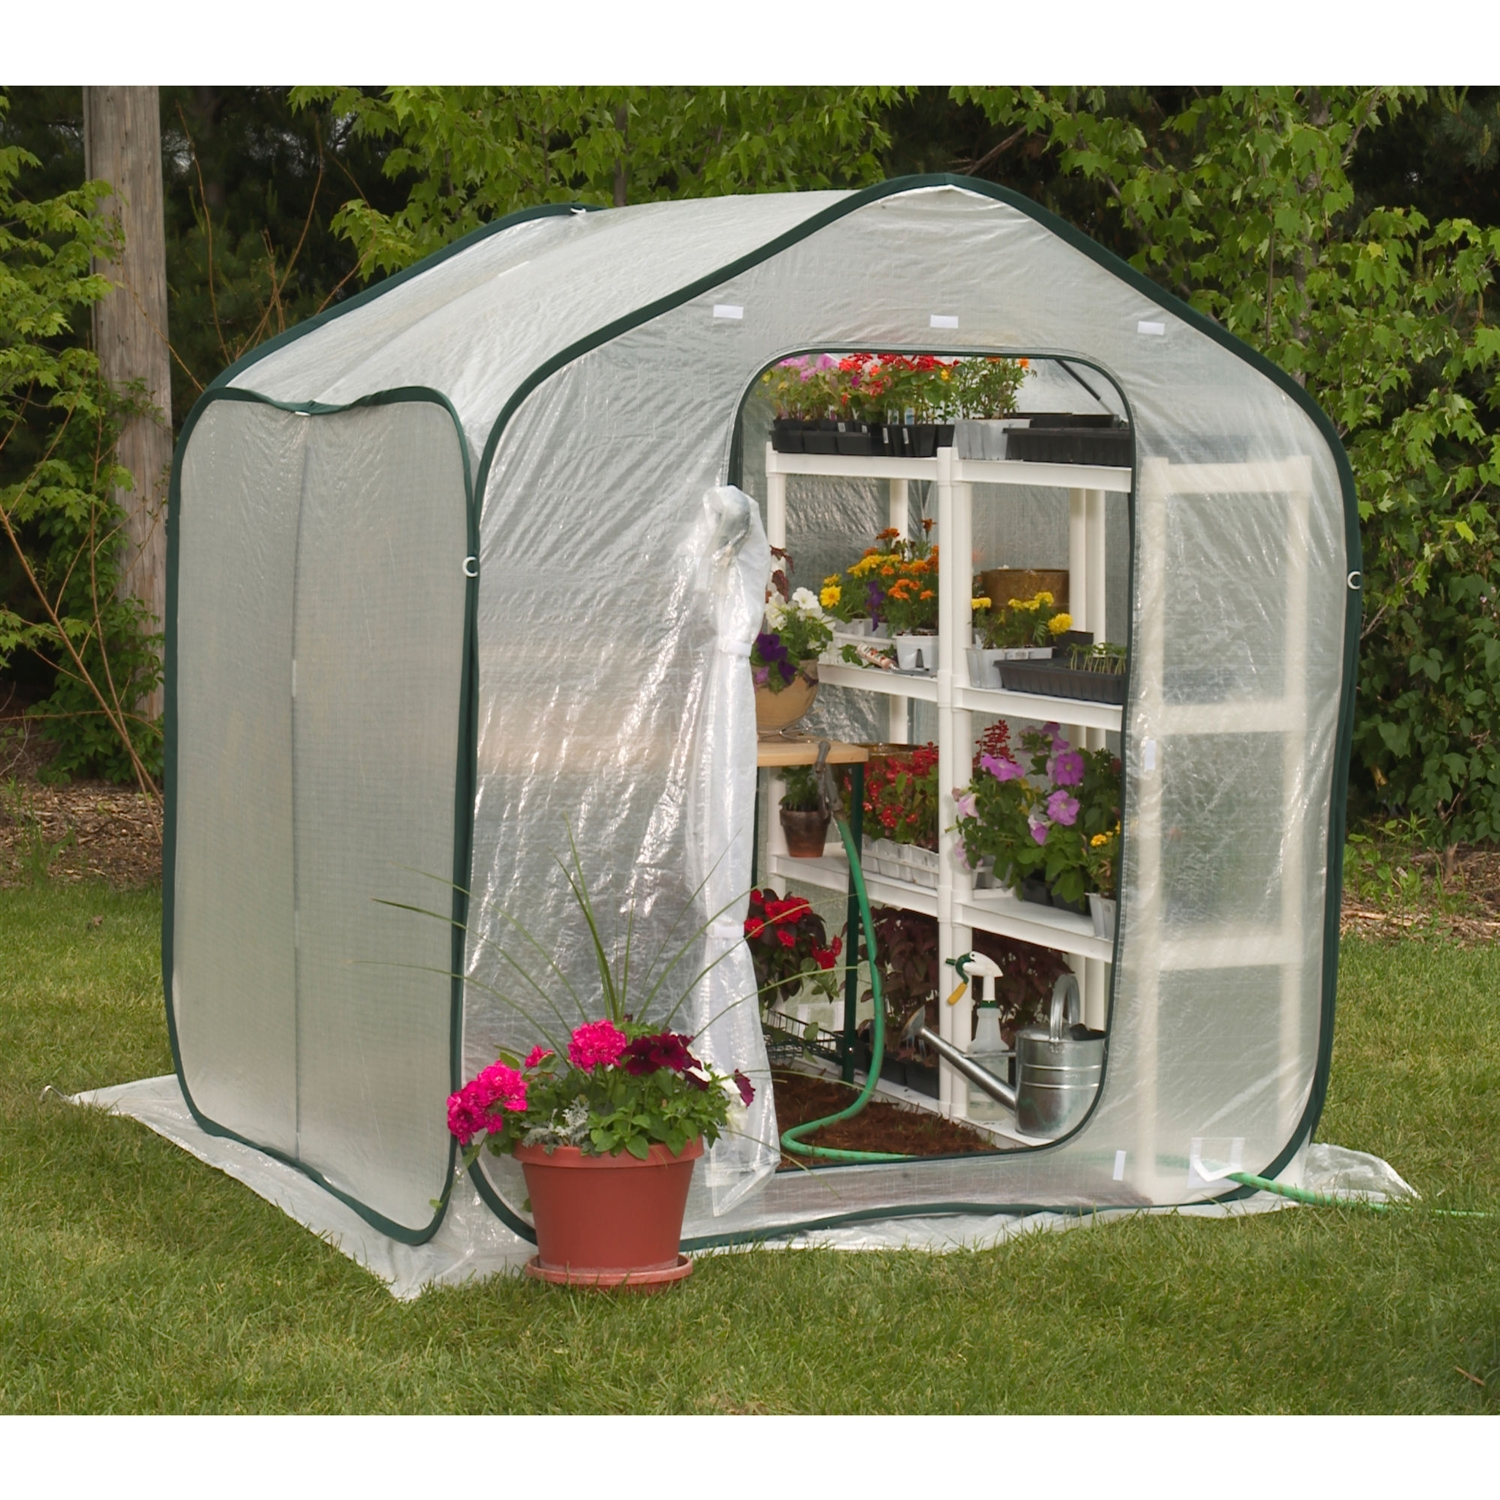 Spring Gardener Flower-House Lightweight Greenhouse (6' x 6'), WFSHG128351 :  The Spring-House is perfect for improving climatic conditions in all geographic locations. The greenhouse environment makes it easier to keep your plants green. Now your plants can bloom earlier with a head start on the Spring and Summer months and you can garden year-round. The SpringHouse design is compact and lightweight for easy transport, setup and take down. Only minimal assembly is required. Two screened doors double as vents to provide optimum air circulation. All Flower-House greenhouses are constructed with the incredibly durable Grow-Tec material. Grow-Tec is UV resistant, weatherproof and features rip stop protection.  Four convenient accesses for water hose or power cord; Comes with instruction manual and greenhouse guide; Ground stakes, tie-downs, shade cover, and carry pack included. Night time temperatures inside your Flower-house greenhouse will drop to outside temperatures without an additional heating source; 1 year limited warranty; Please Note: Warranty is not valid until the warranty card is filled out and returned within 14 days of purchase; Built in Vents, No Foundation Needed, Portable, Lightweight; Type: Hobby Greenhouse; Home Gardener; Panel Material: Polyethylene; Wind tested up to 60 MPH winds.